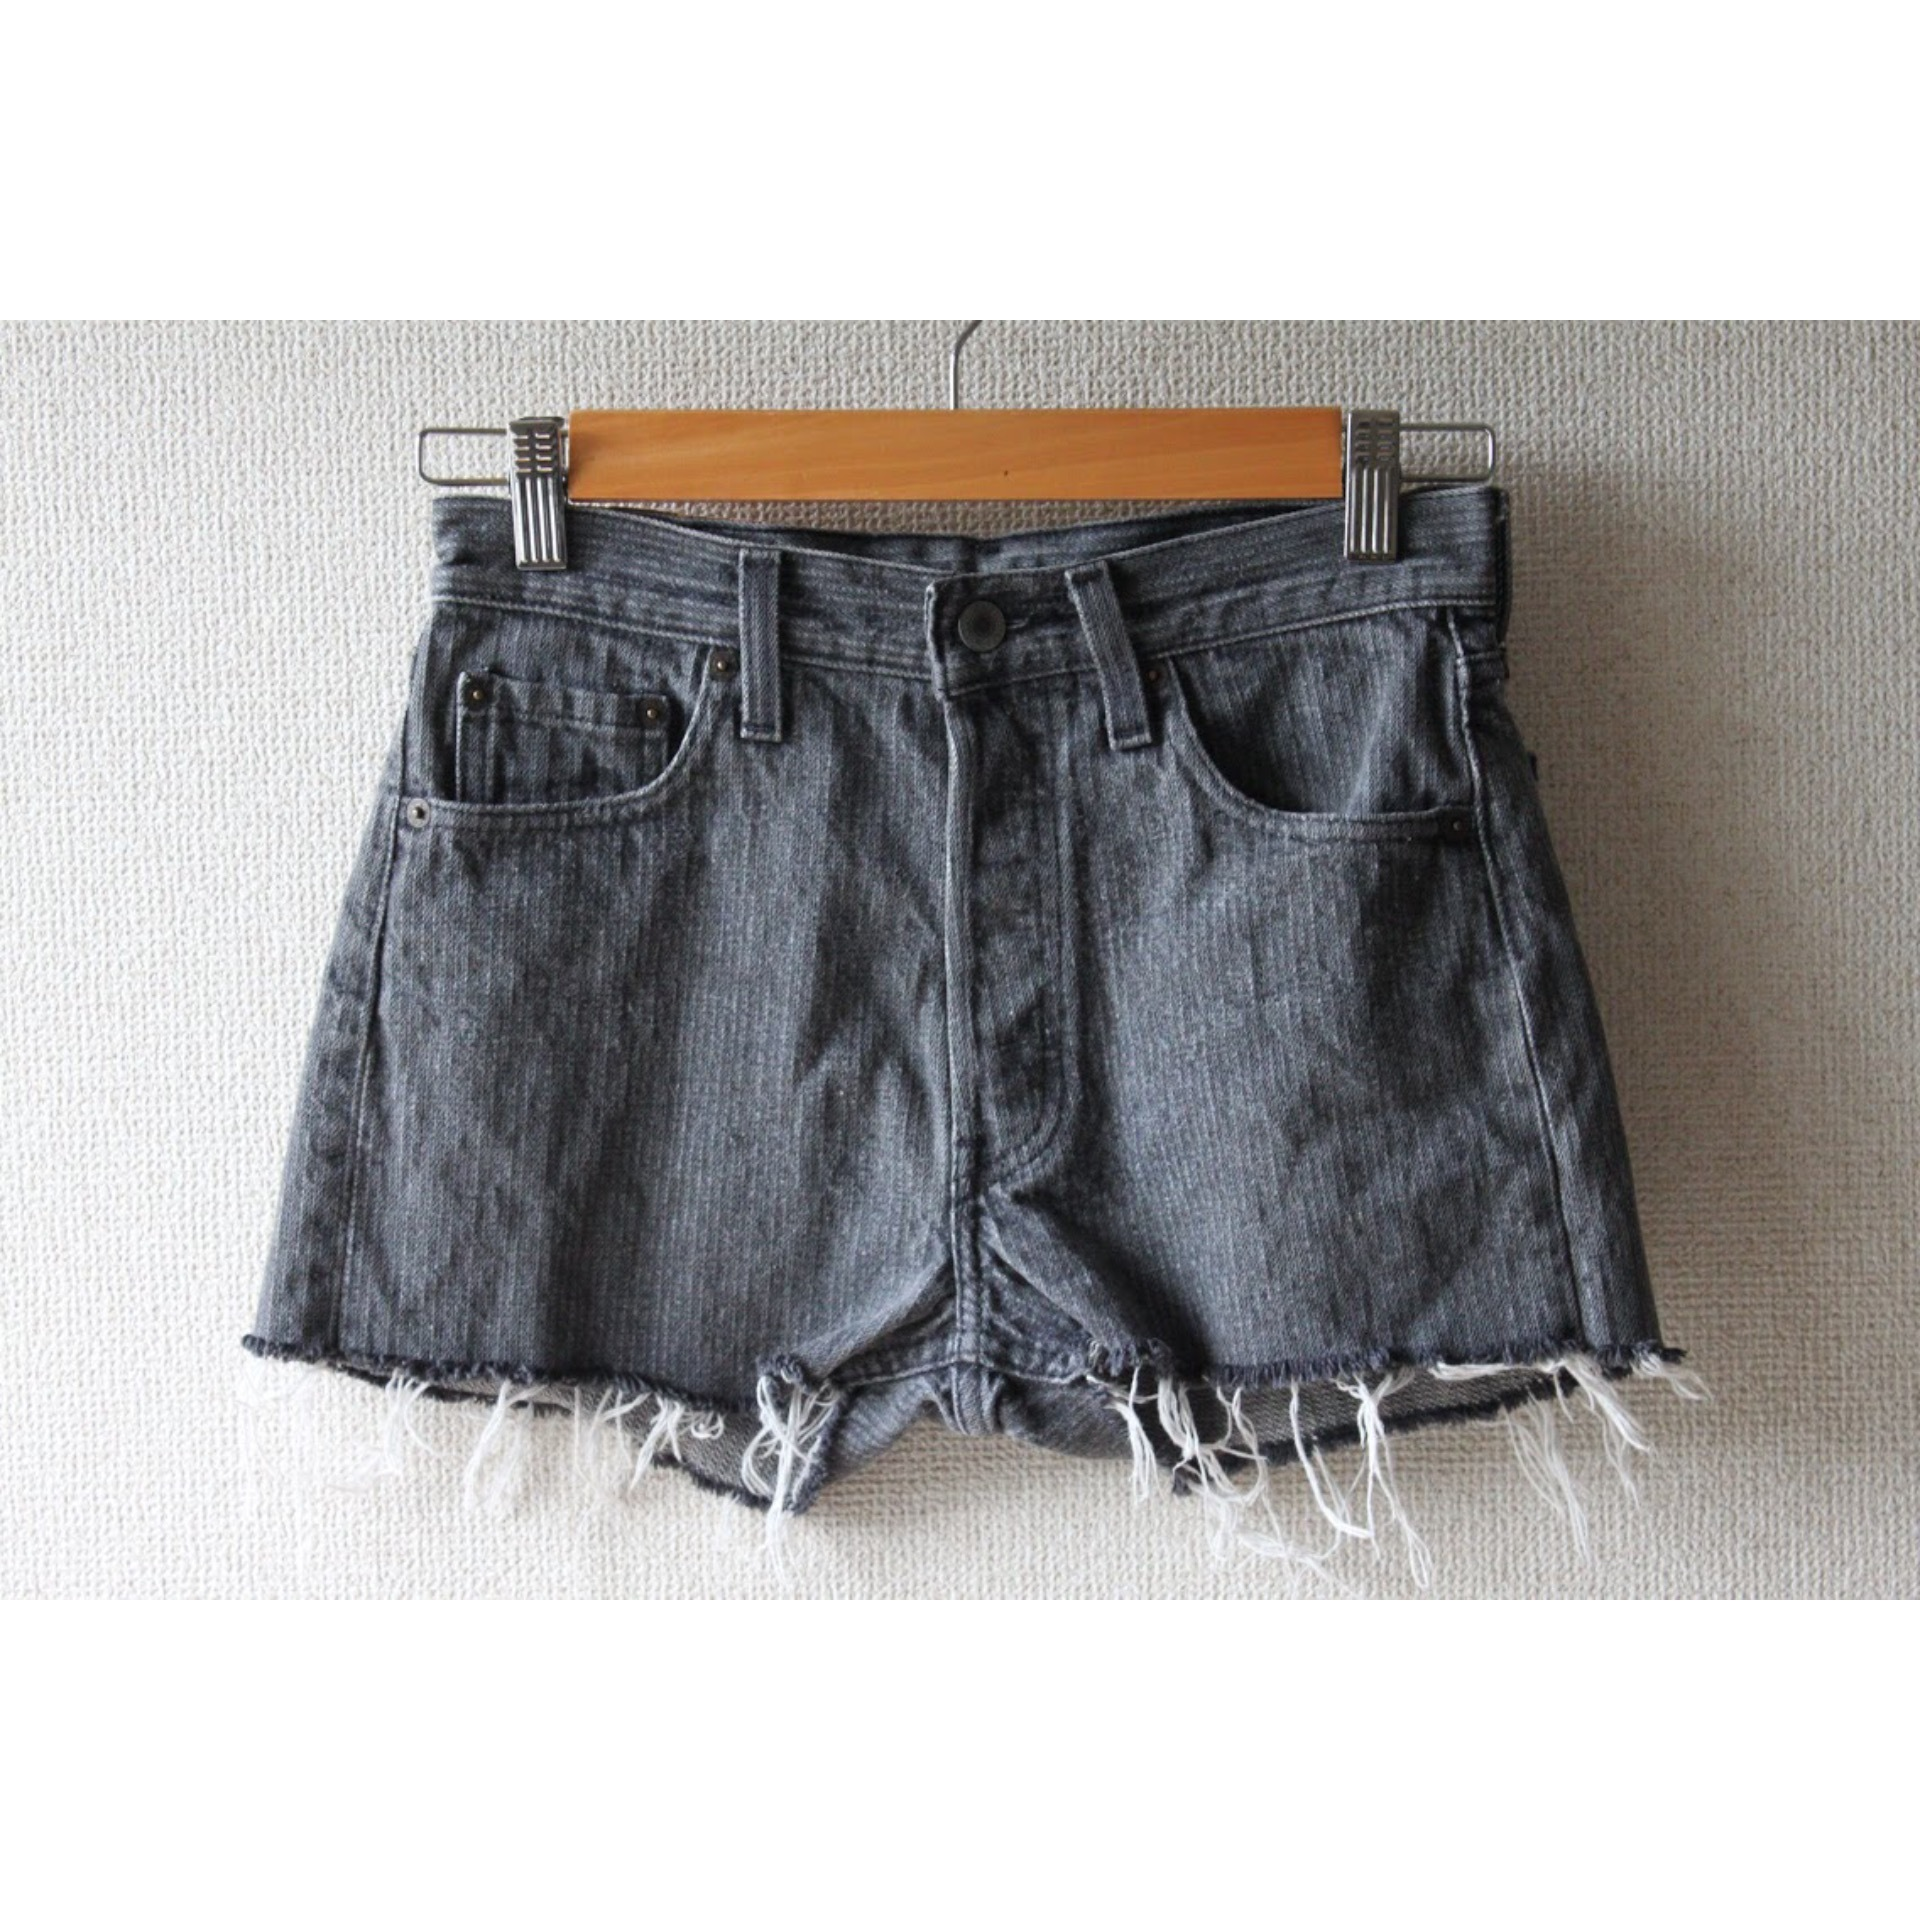 Vintage stripe denim shorts by Levis